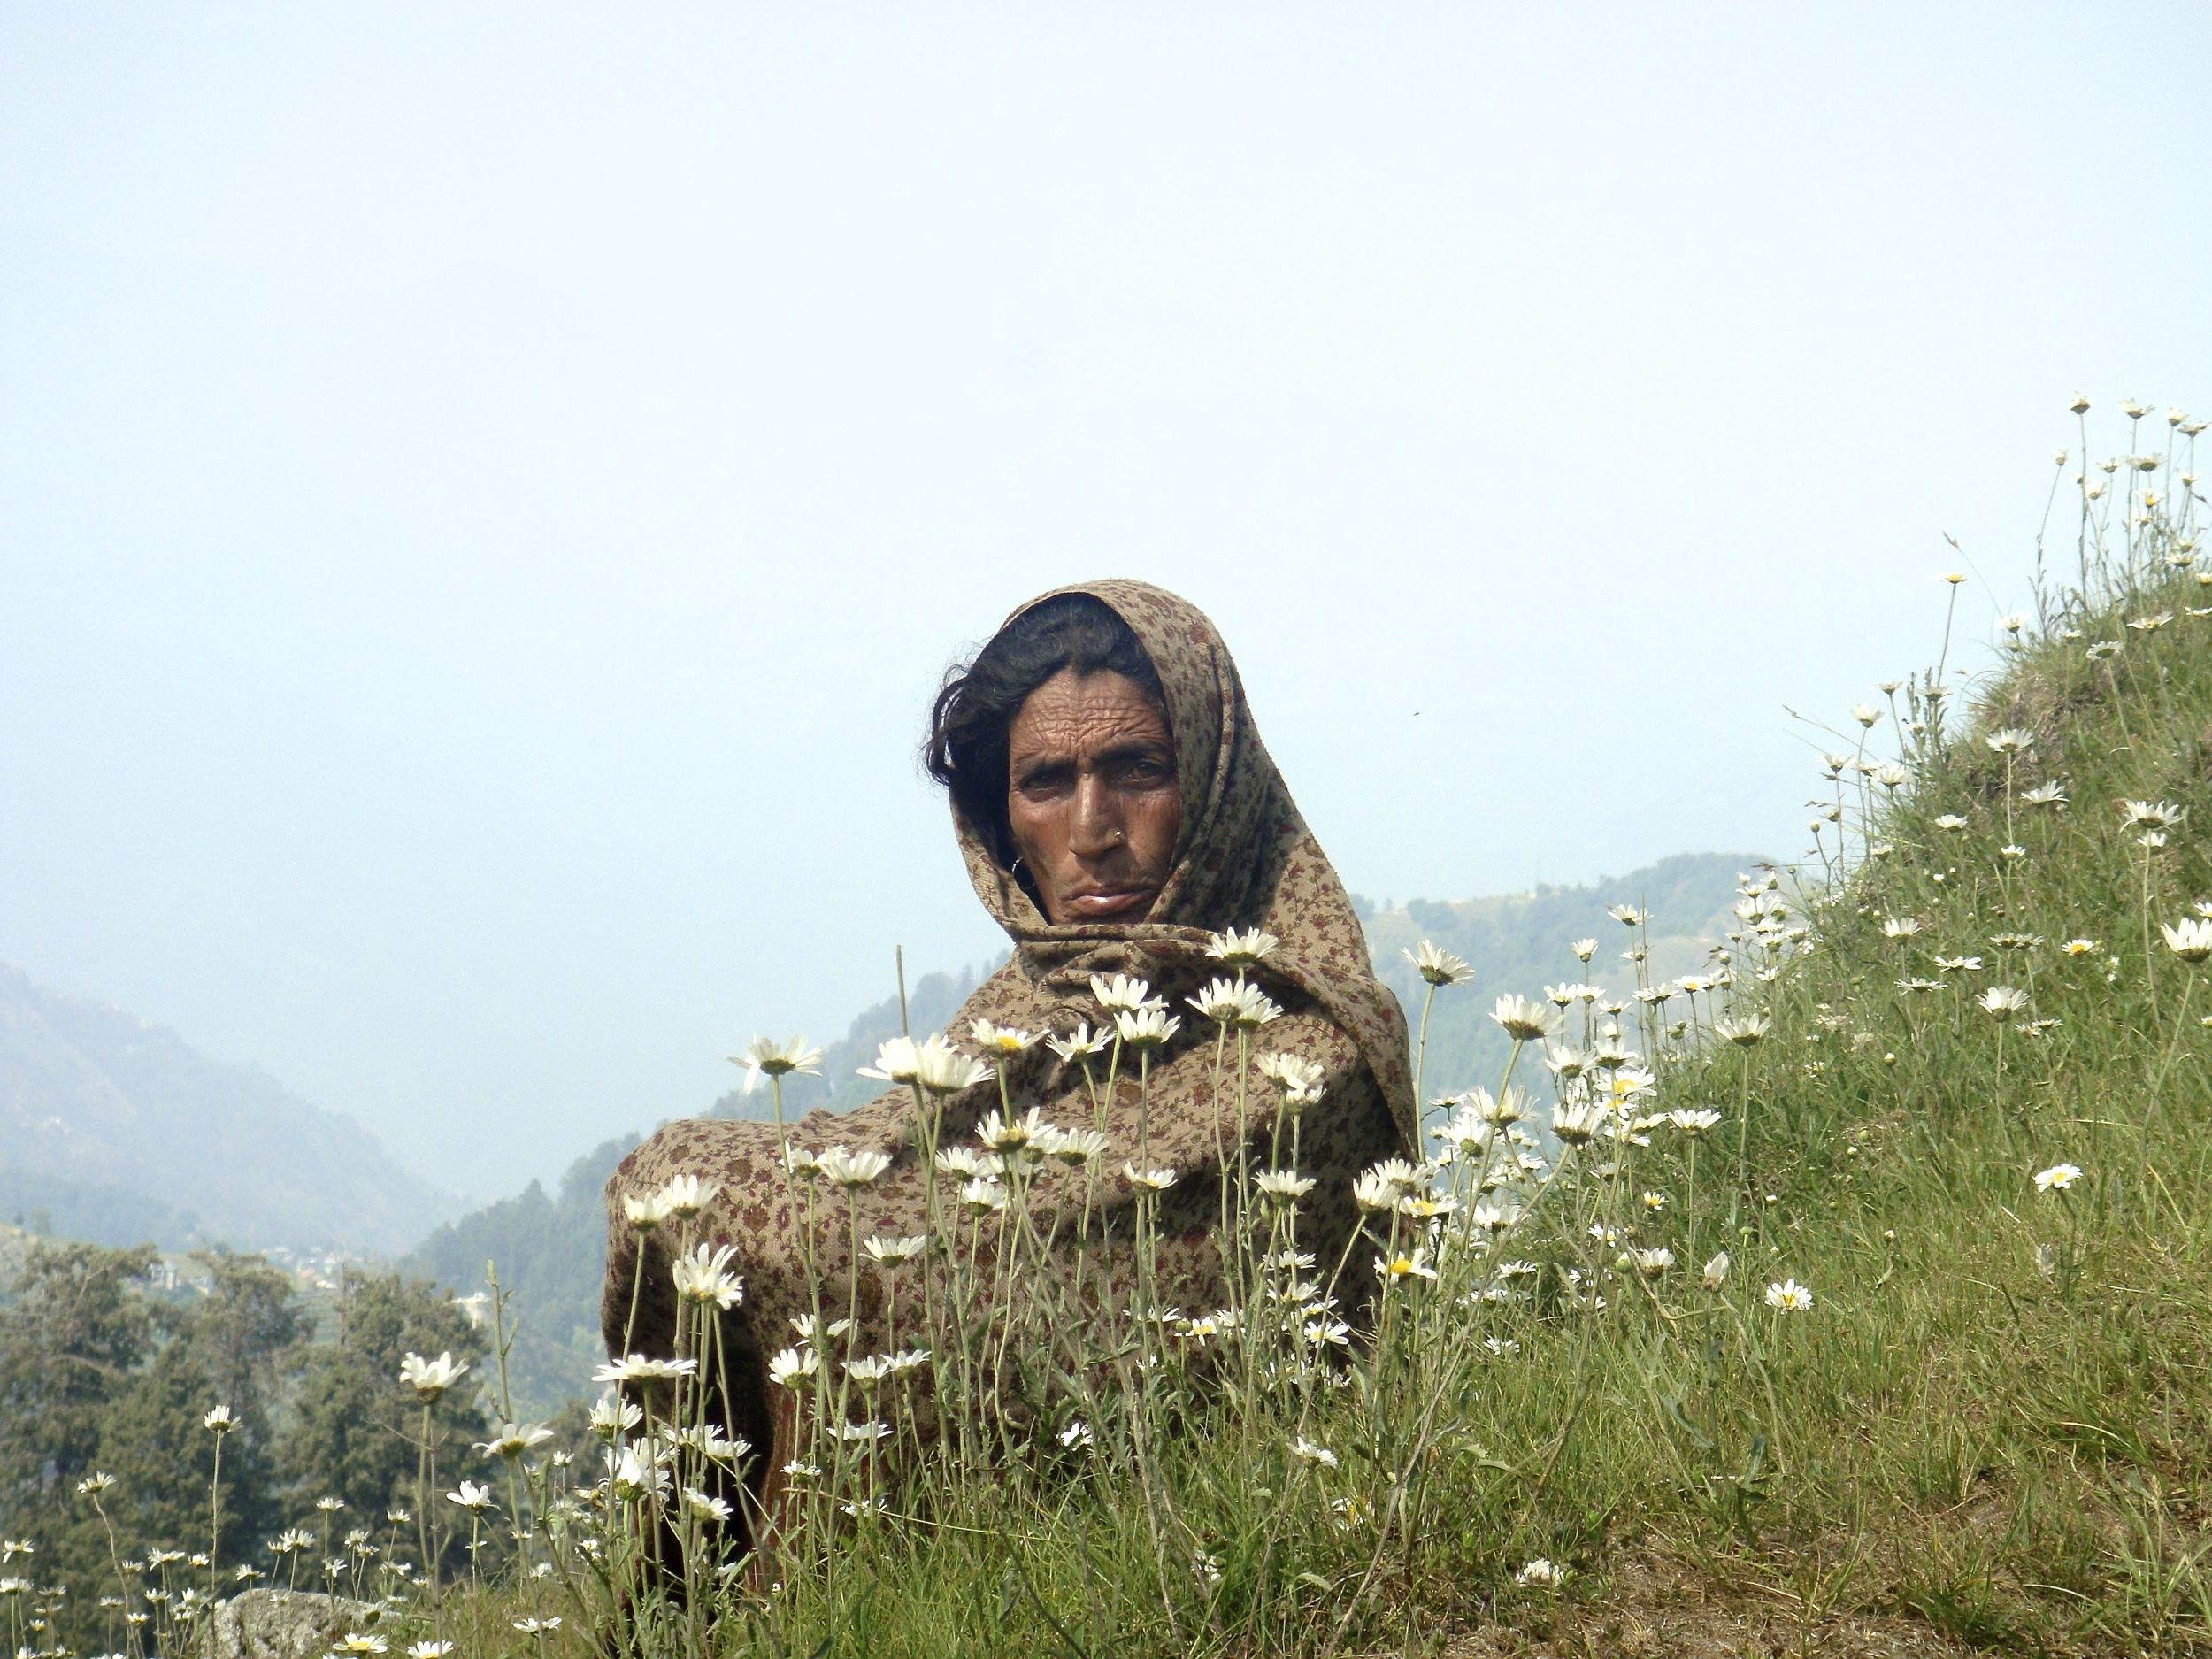 Khalima, a peasant who came from Pathankhot to Dainkund with her cattle (photo by Prarthna)